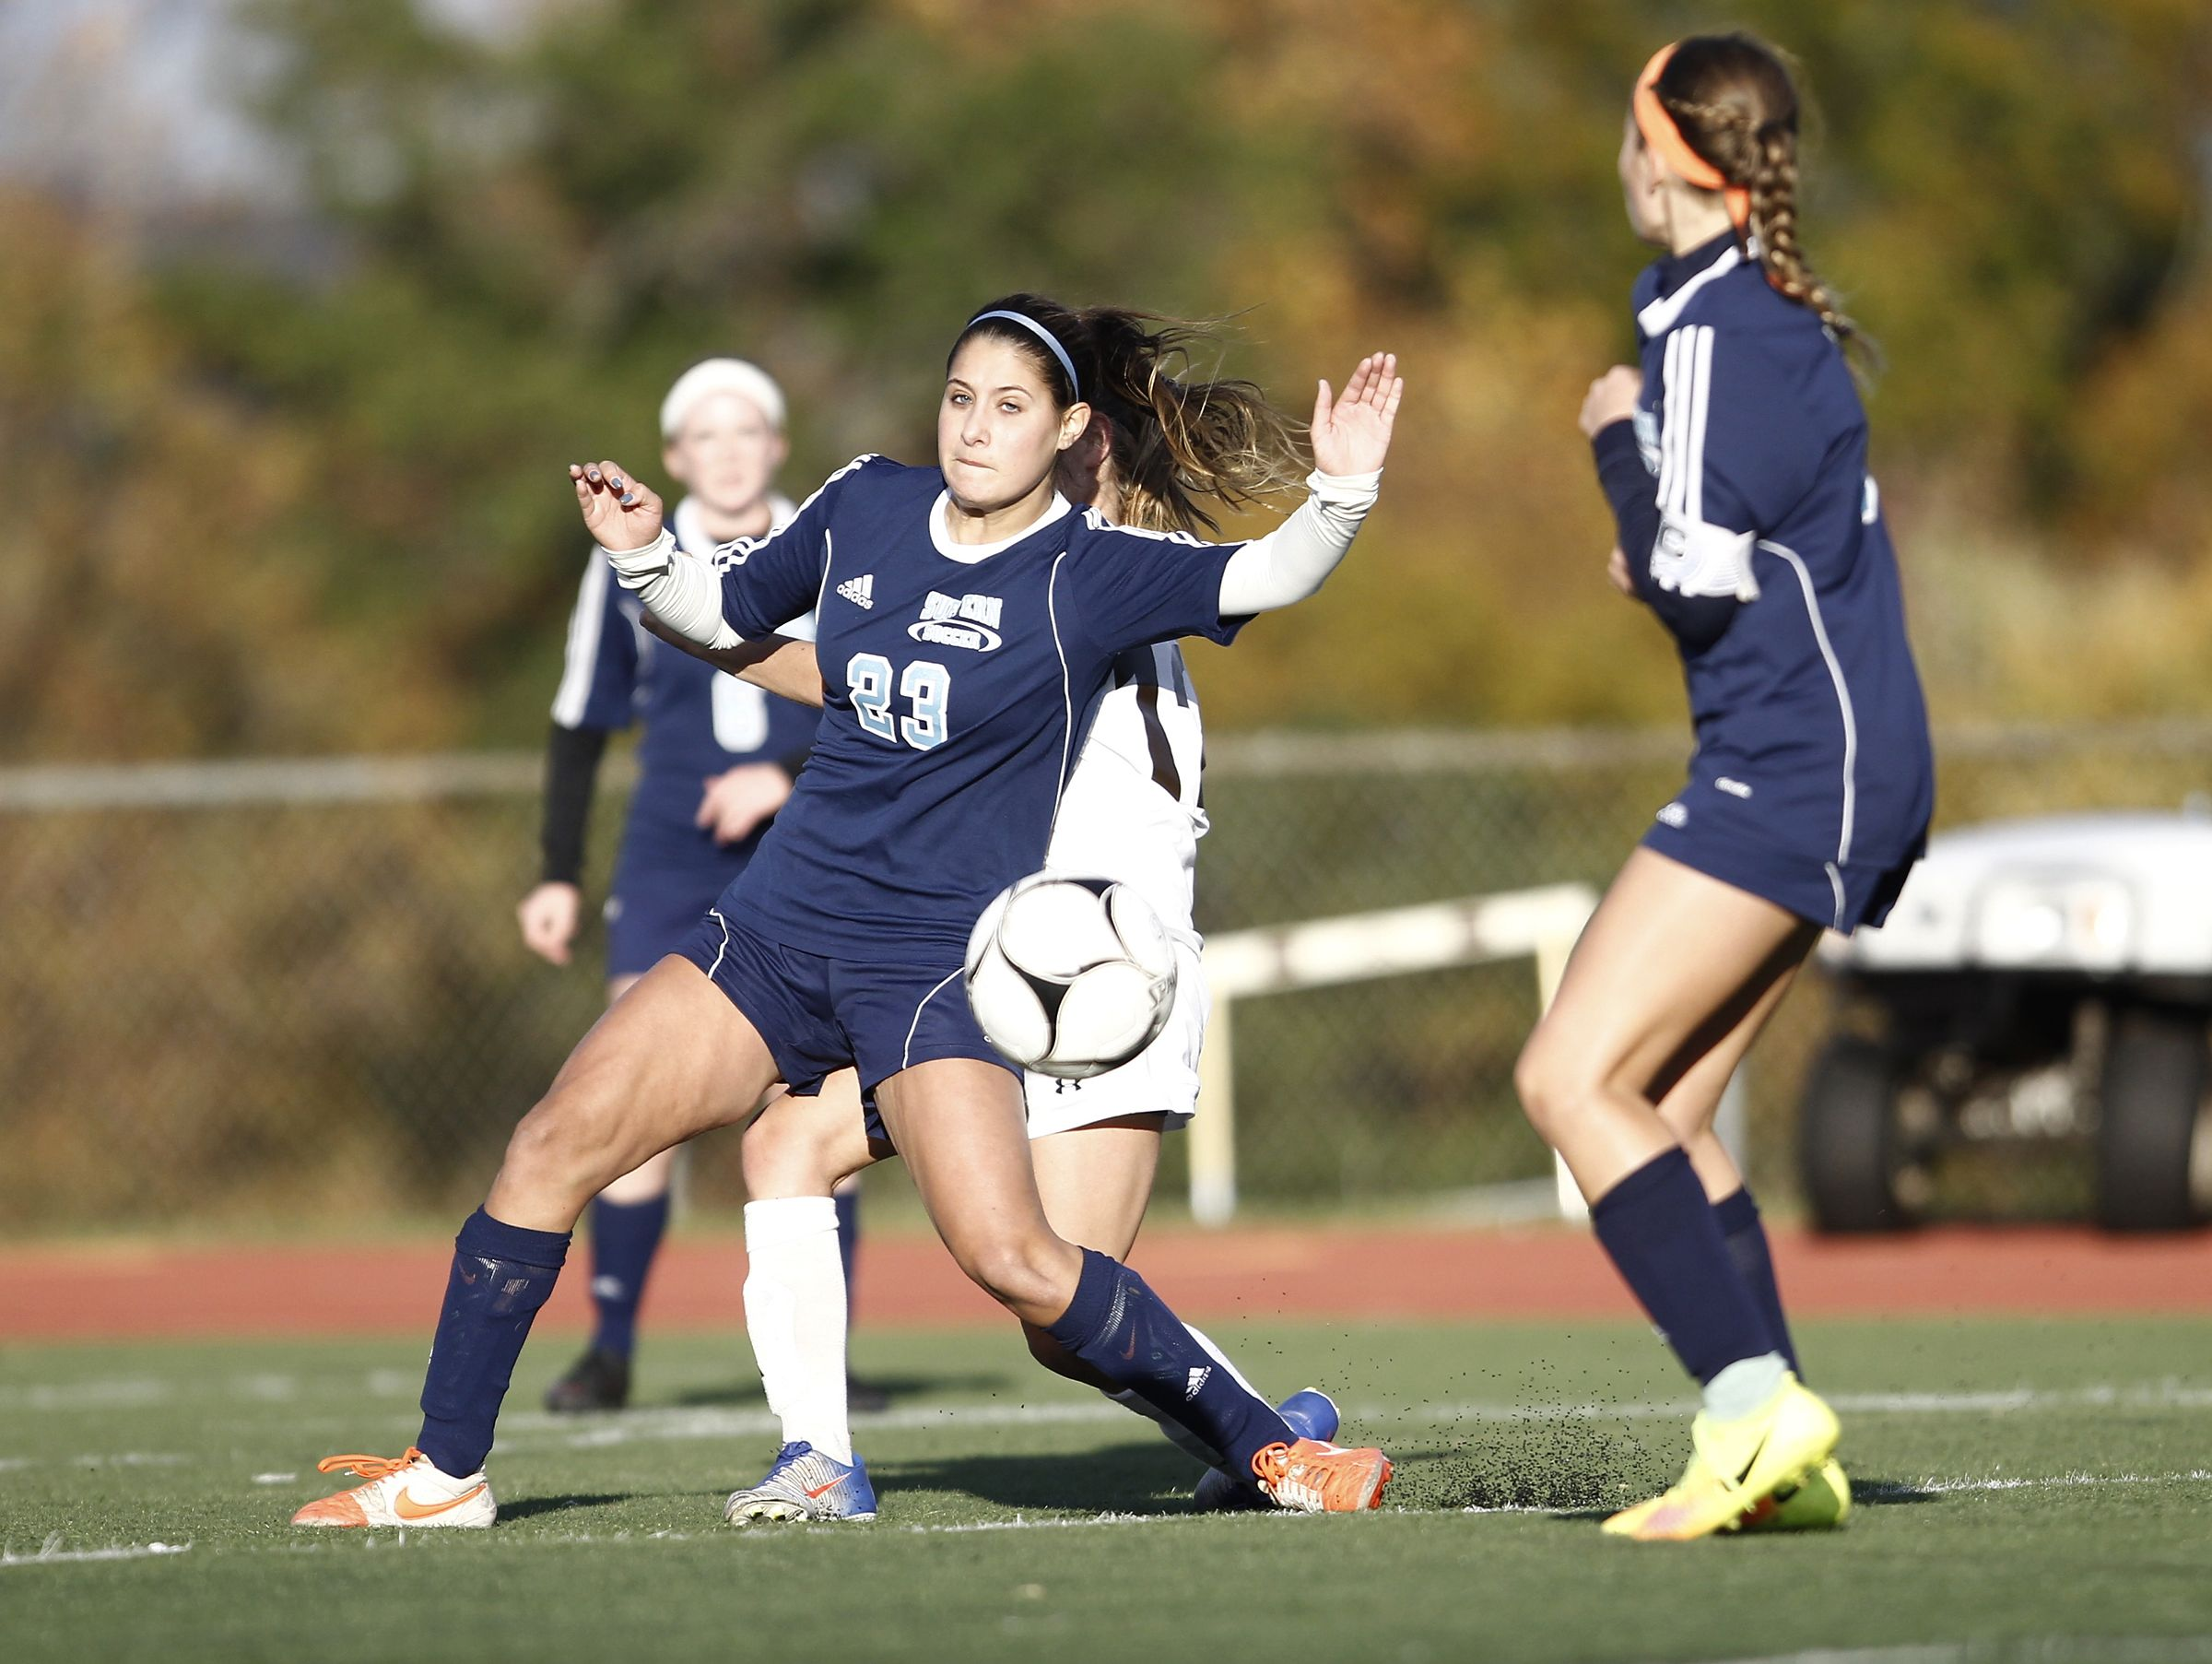 Suffern's Jackie Santangelo (23) works to block a pass during their 2-1 win over Clarkstown South in the girls Class AA soccer quarterfinal at Clarkstown High School South in West Nyack on Tuesday, October 25, 2016.